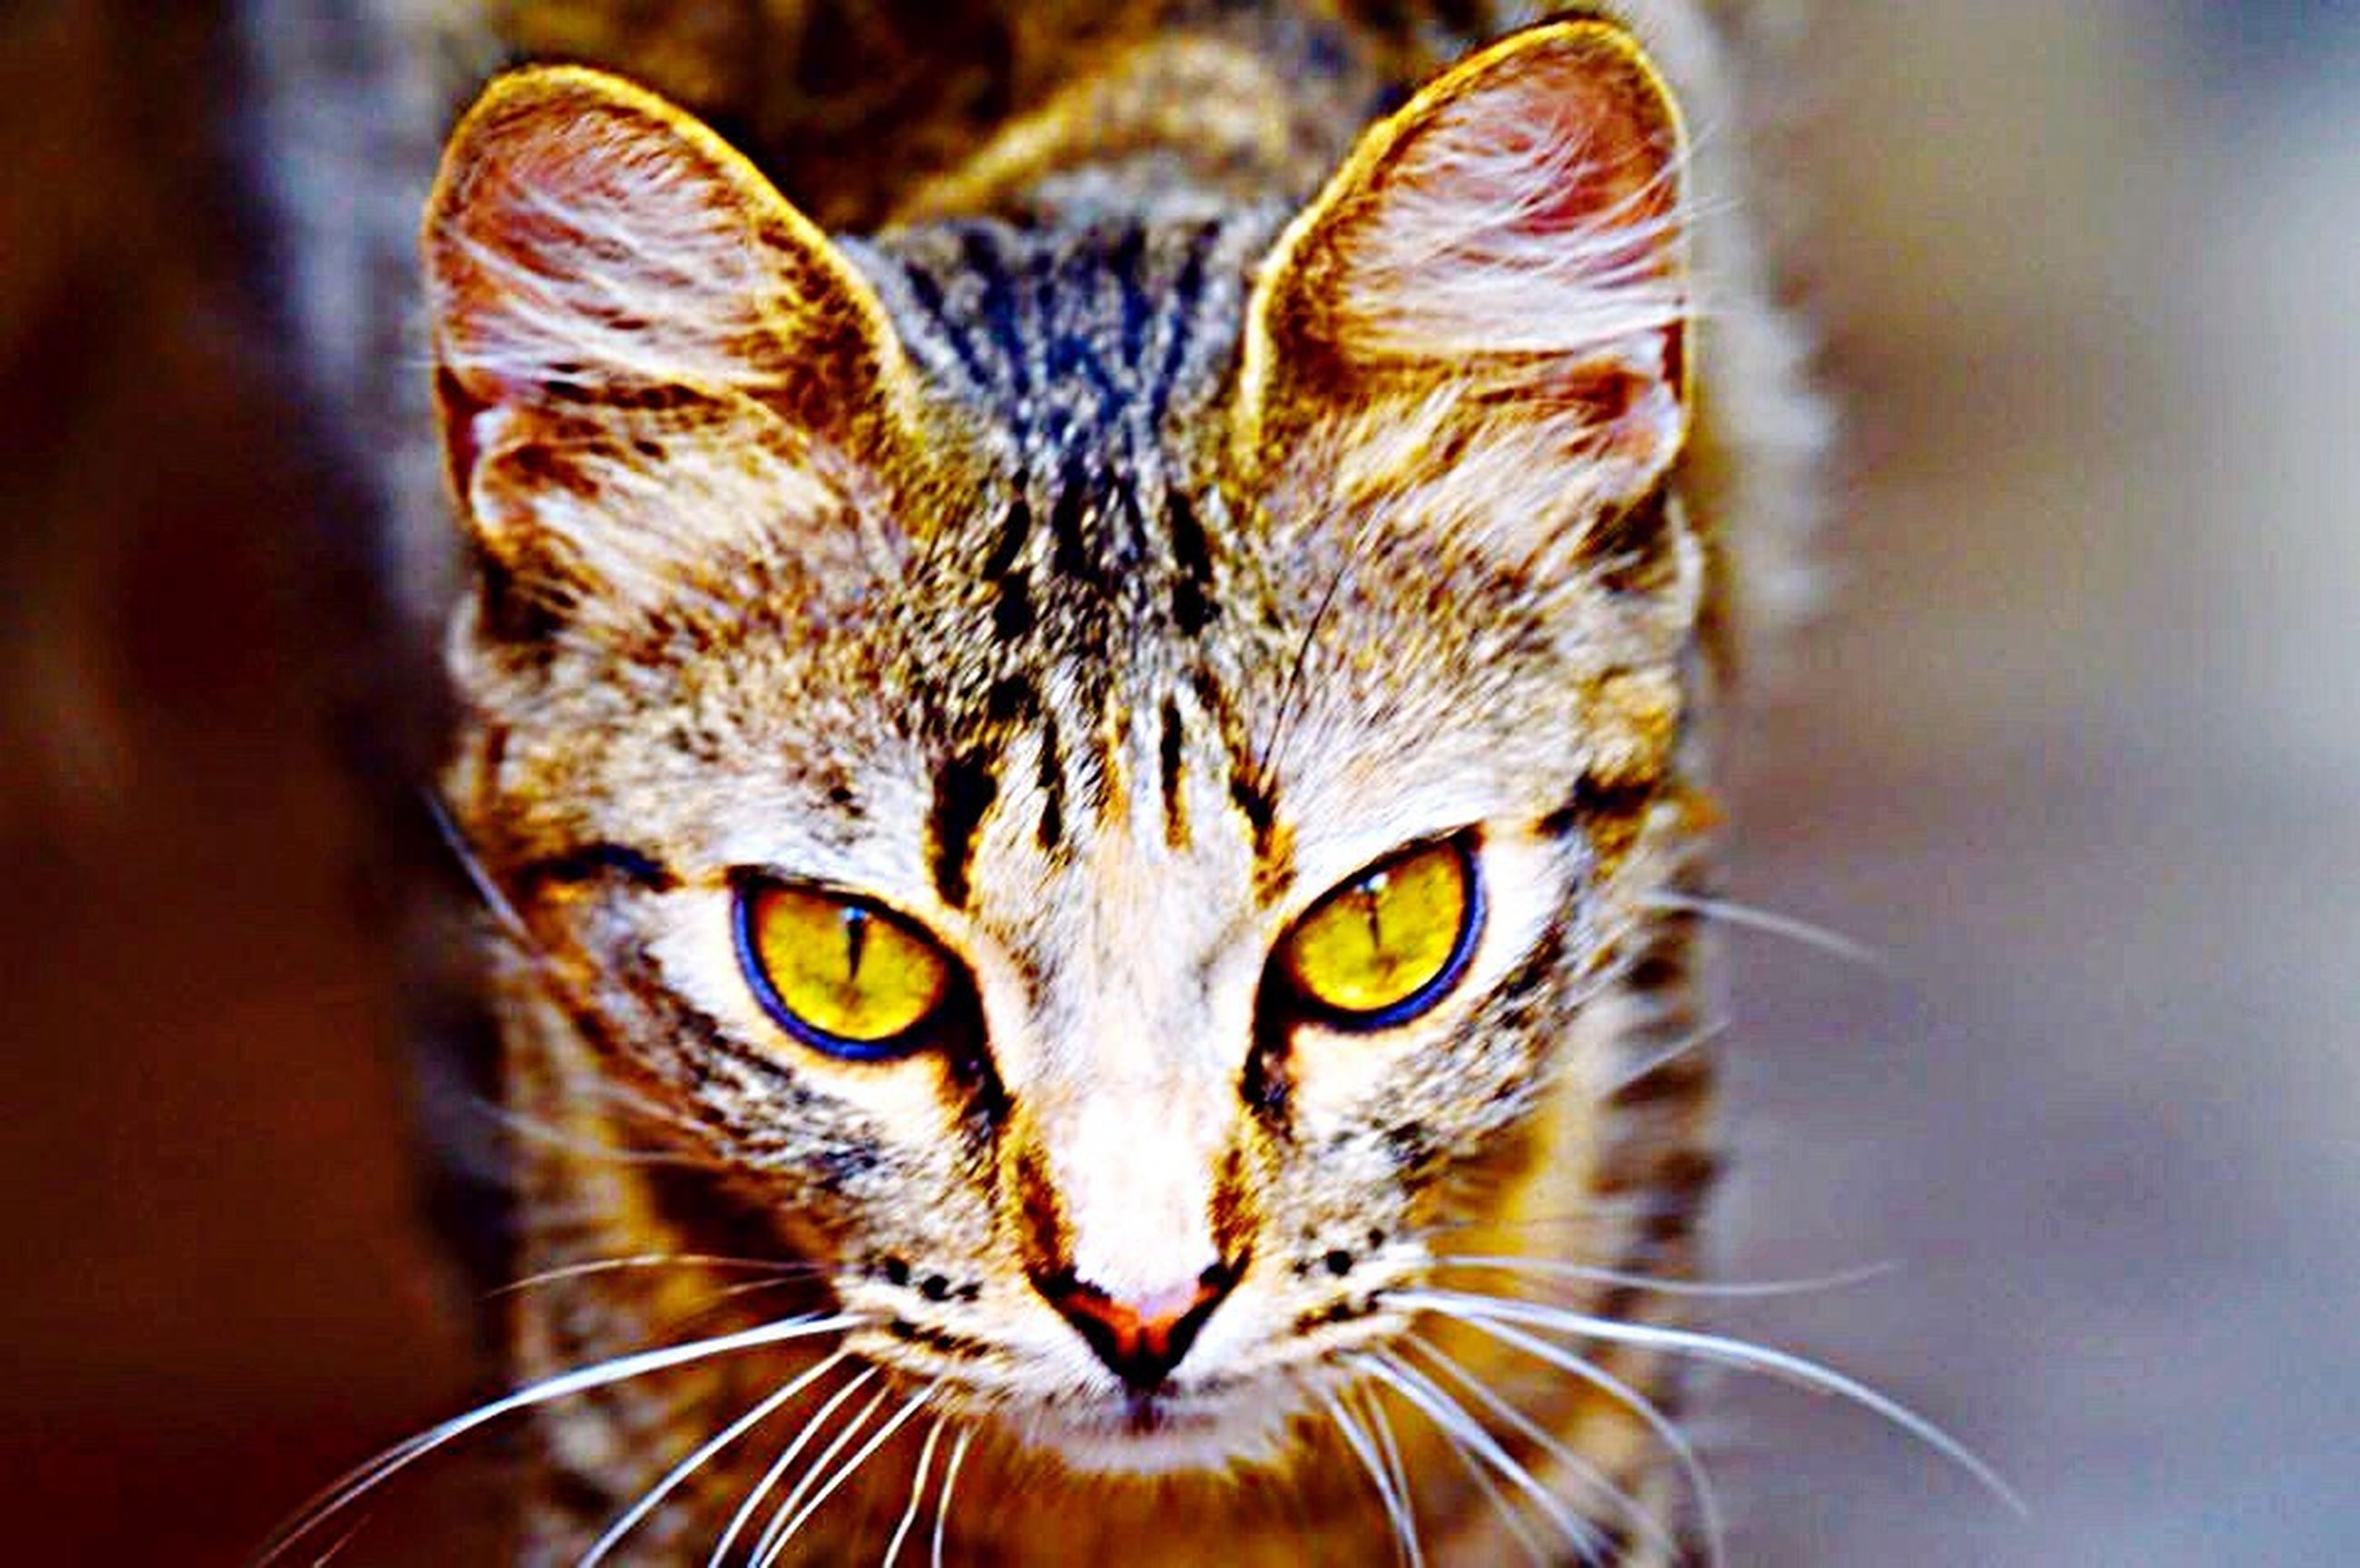 animal themes, one animal, domestic cat, cat, portrait, whisker, looking at camera, feline, animal eye, close-up, animal head, focus on foreground, animal body part, front view, staring, pets, alertness, wildlife, domestic animals, owl